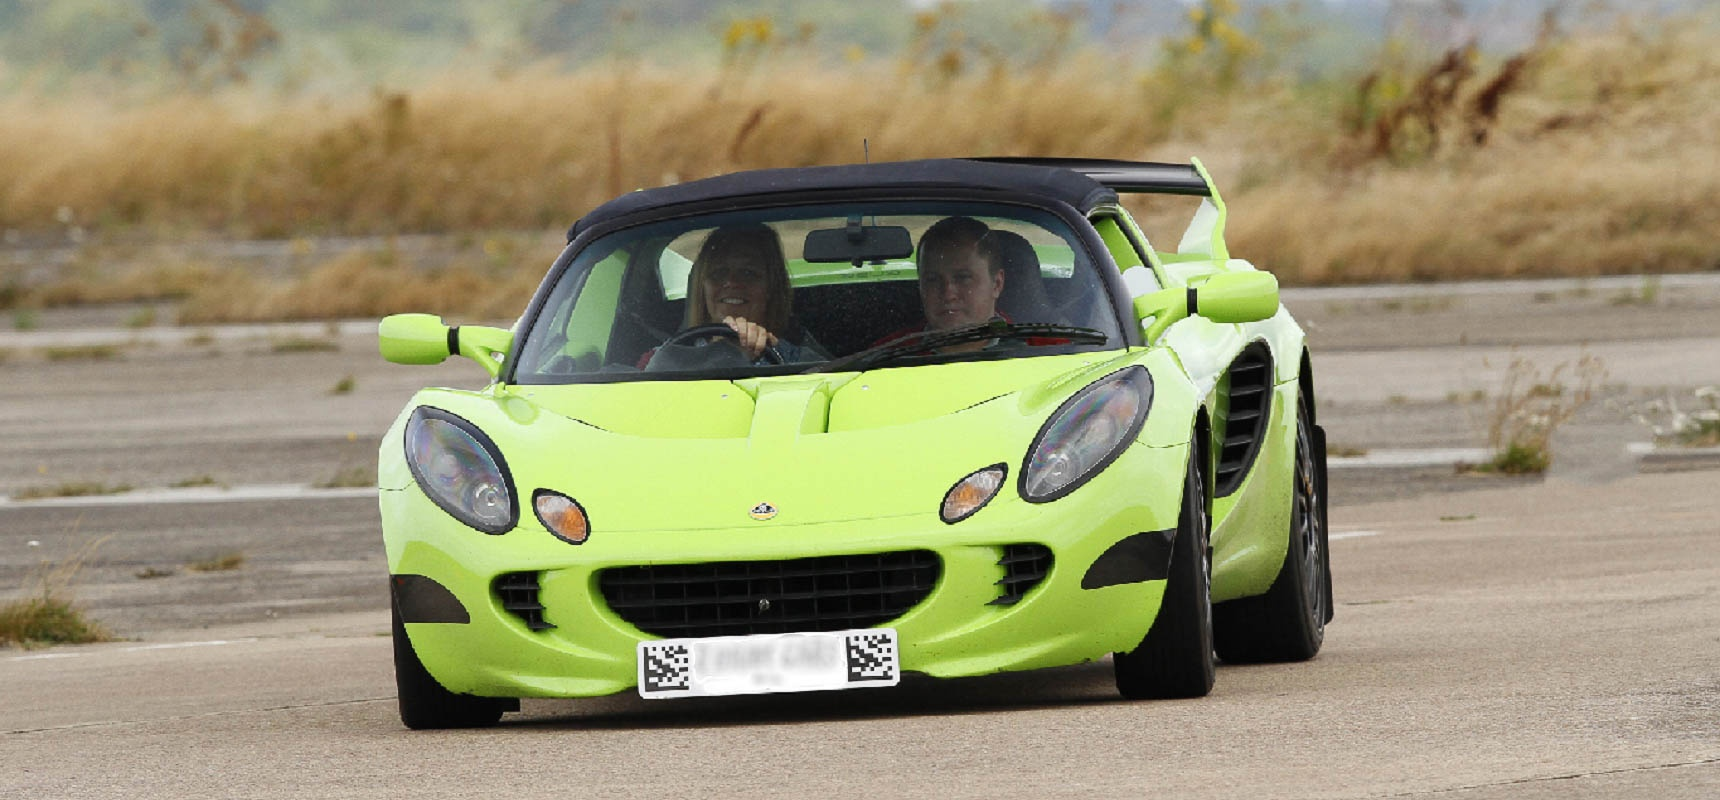 Lotus Thrill Ride Driving Experience - Oxfordshire-3